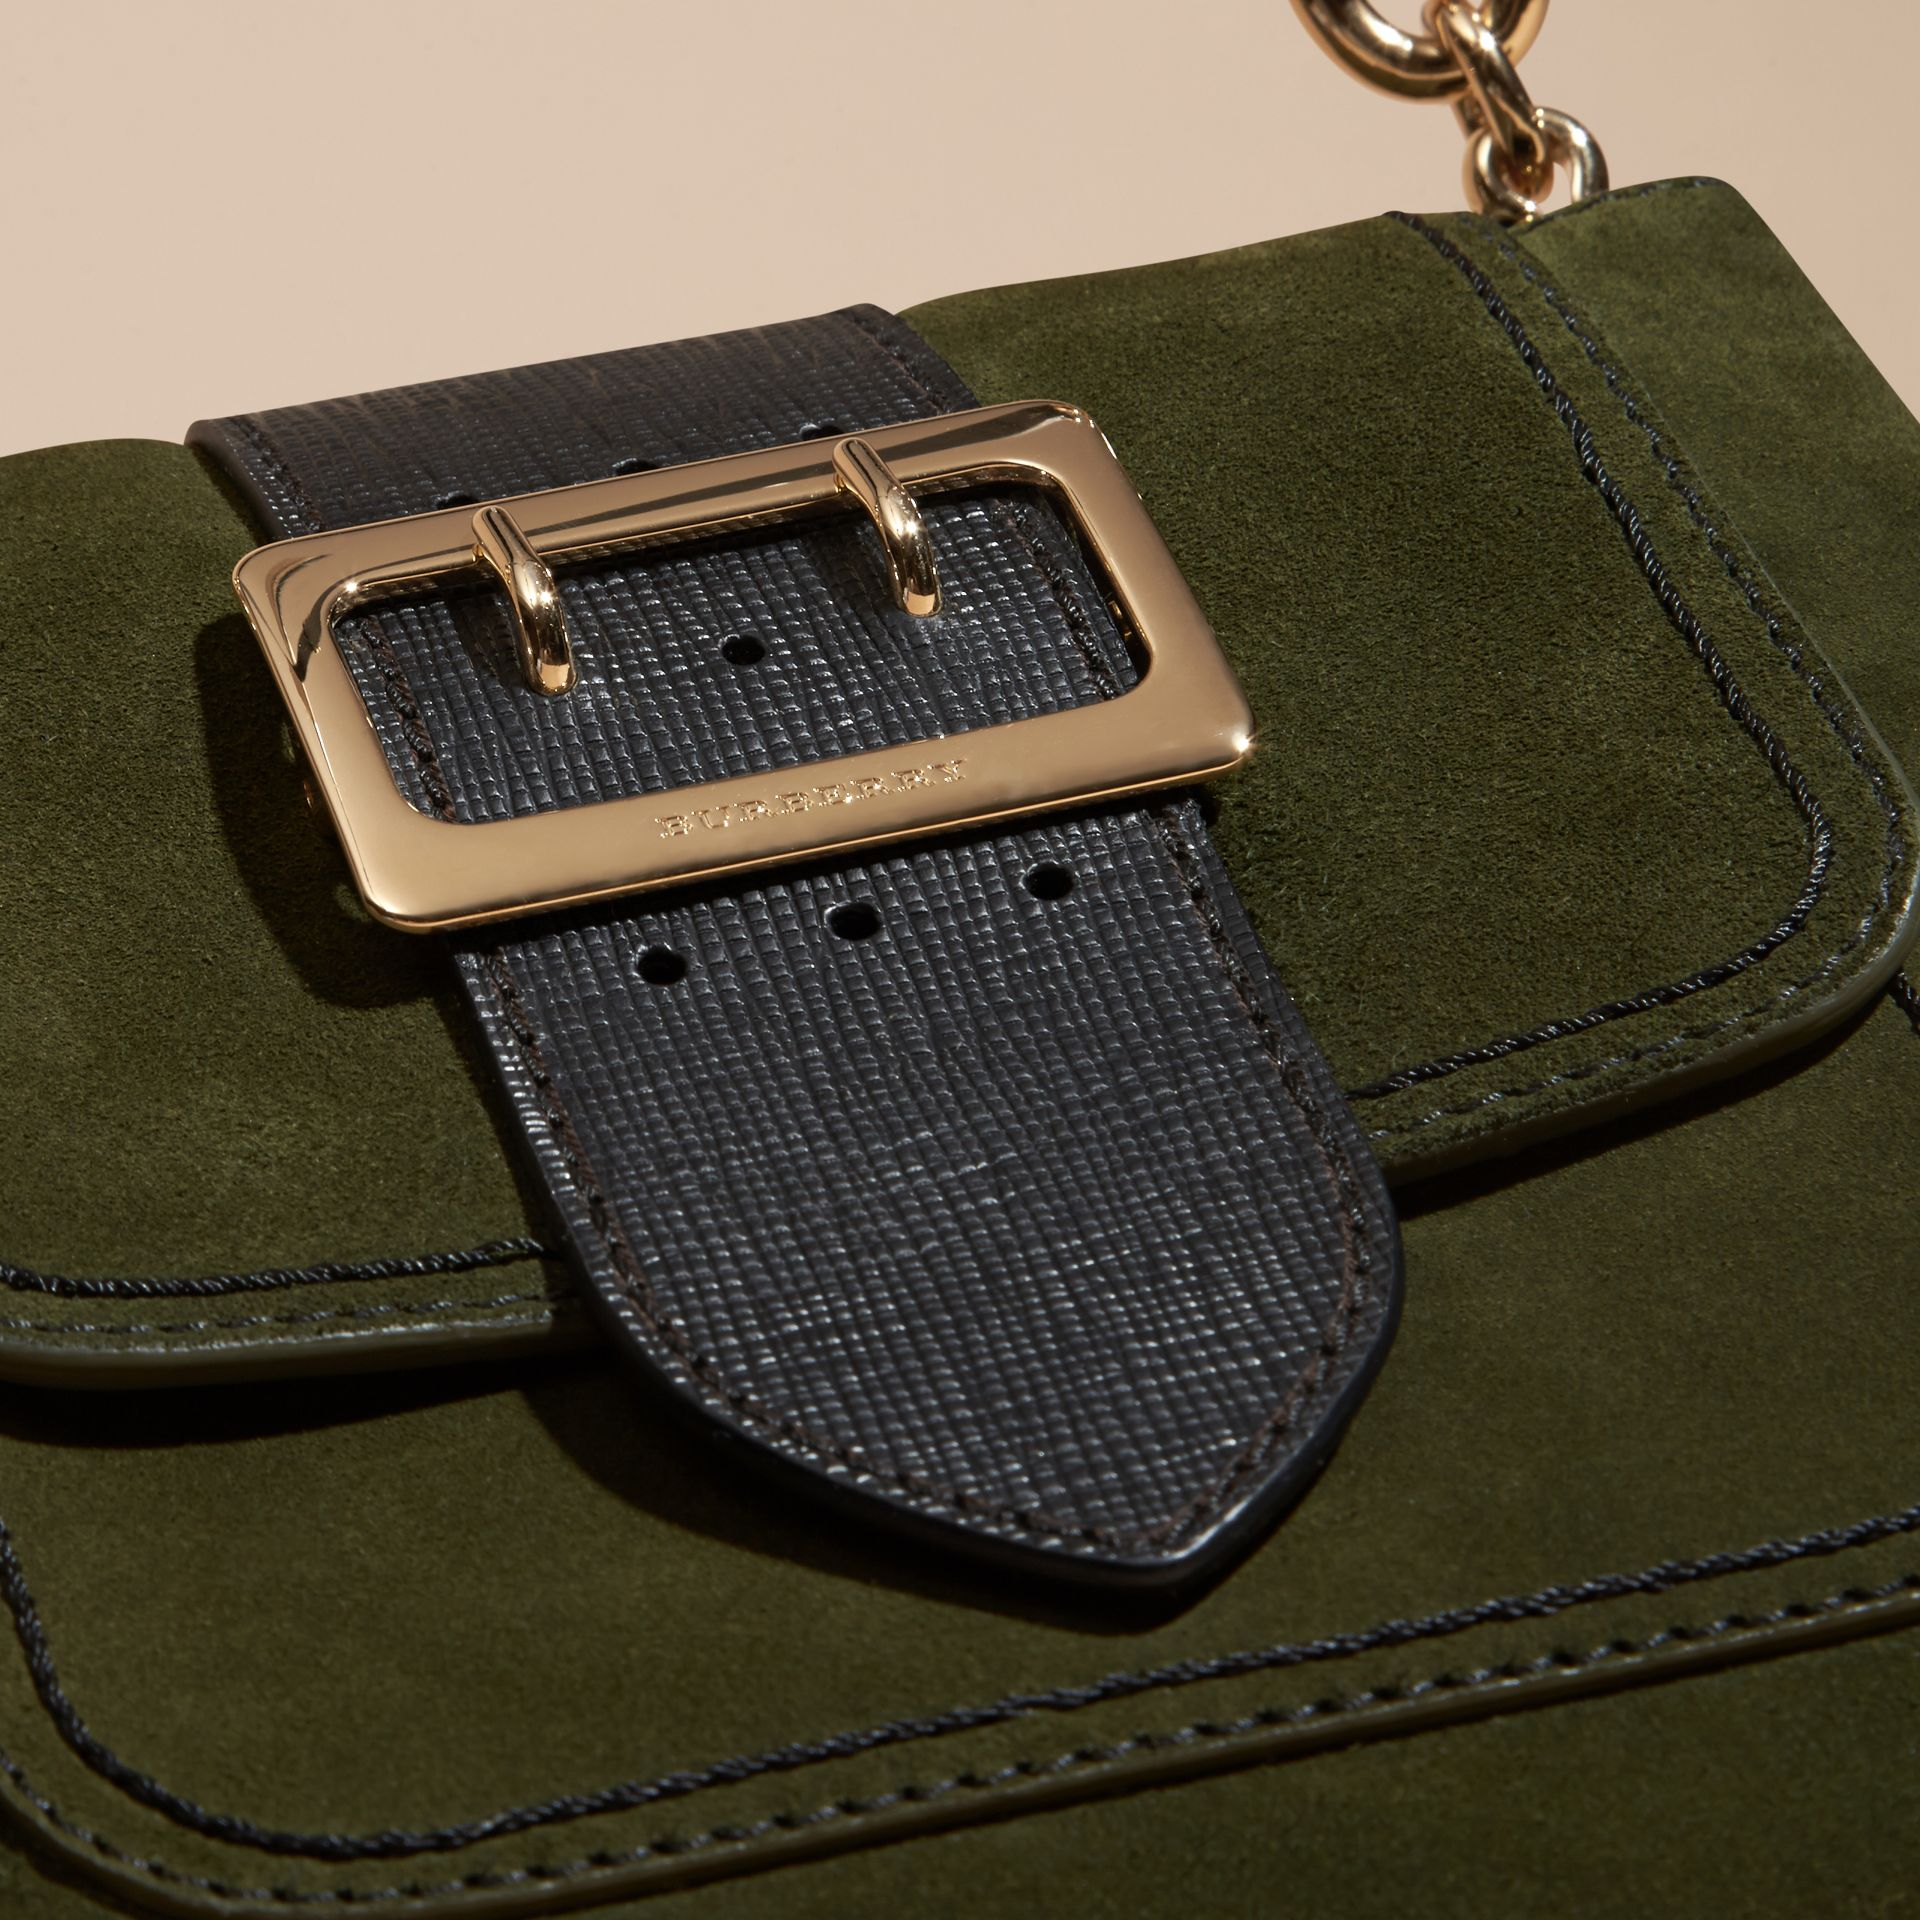 Verde militare Borsa The Buckle media quadrata in pelle scamosciata inglese e motivo House check - immagine della galleria 2